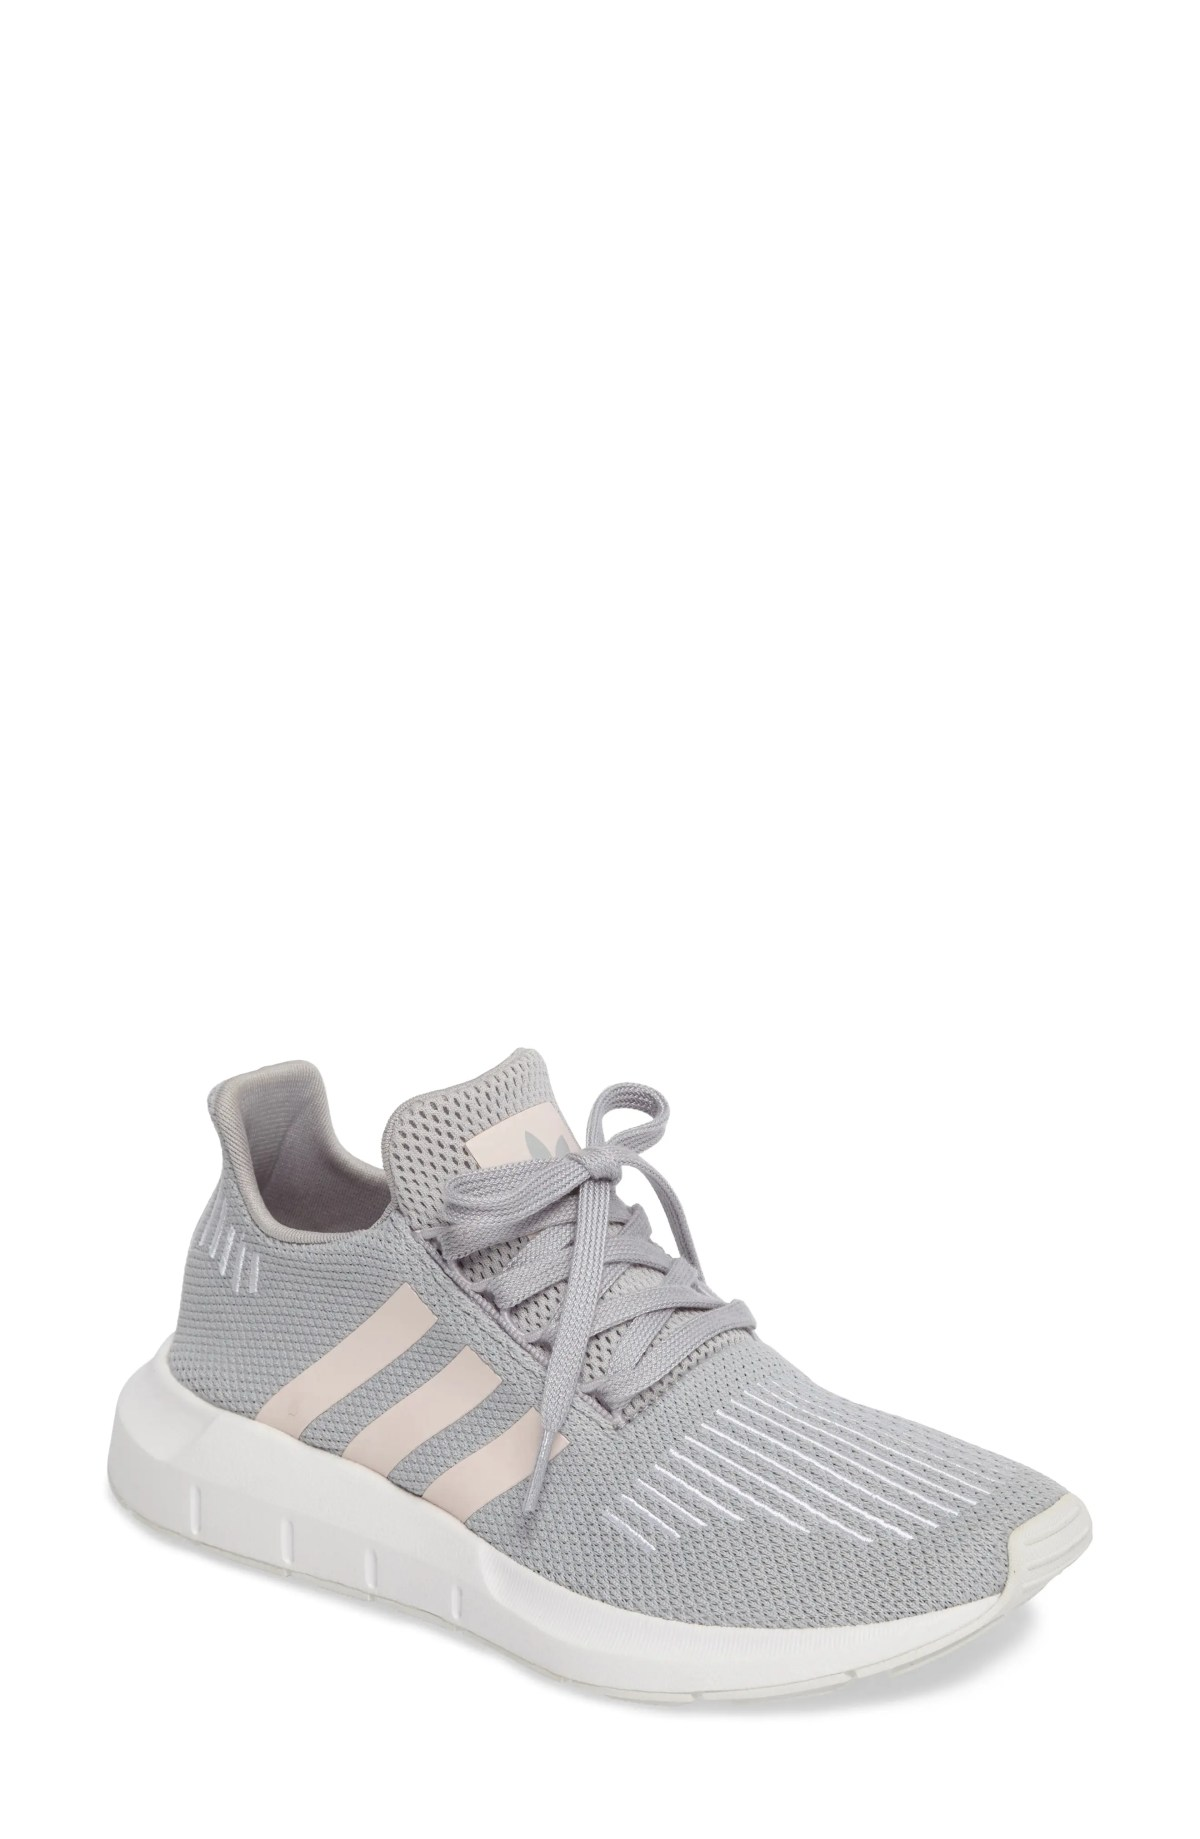 ADIDAS Swift Run Sneaker, Main, color, GREY/ ICEY PINK